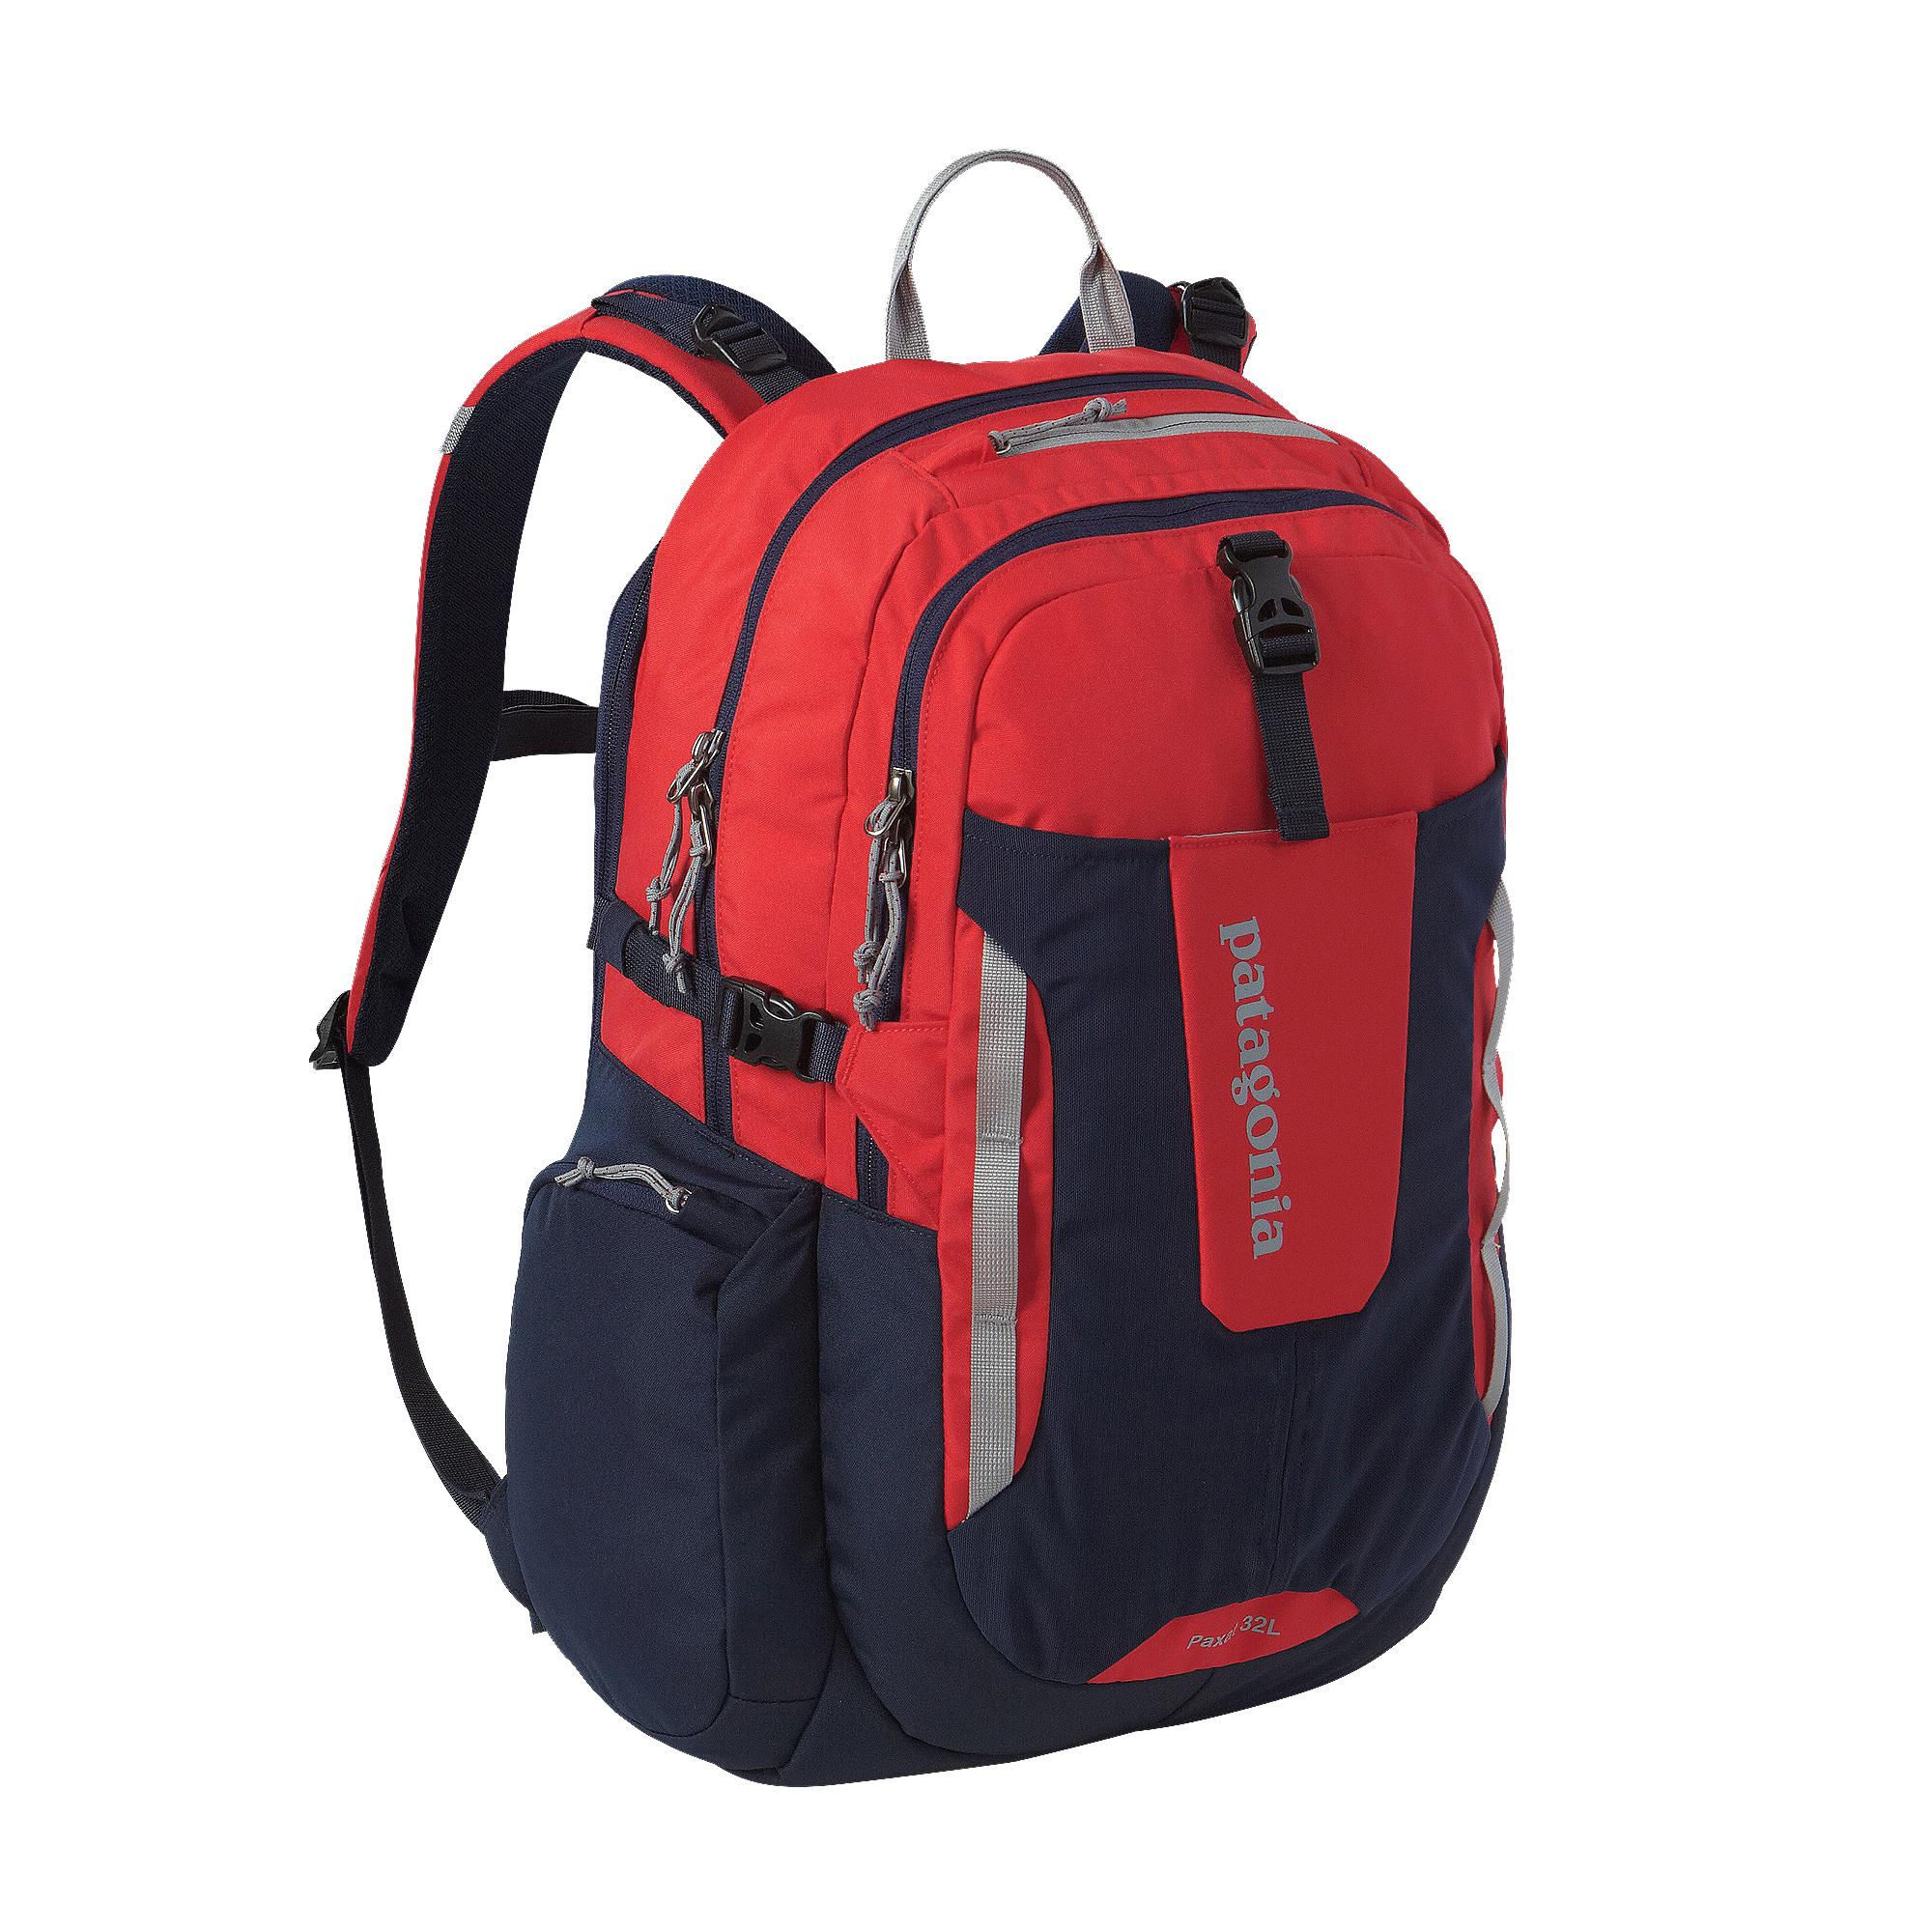 Paxat Backpack 32L | Products, Backpacks and Design